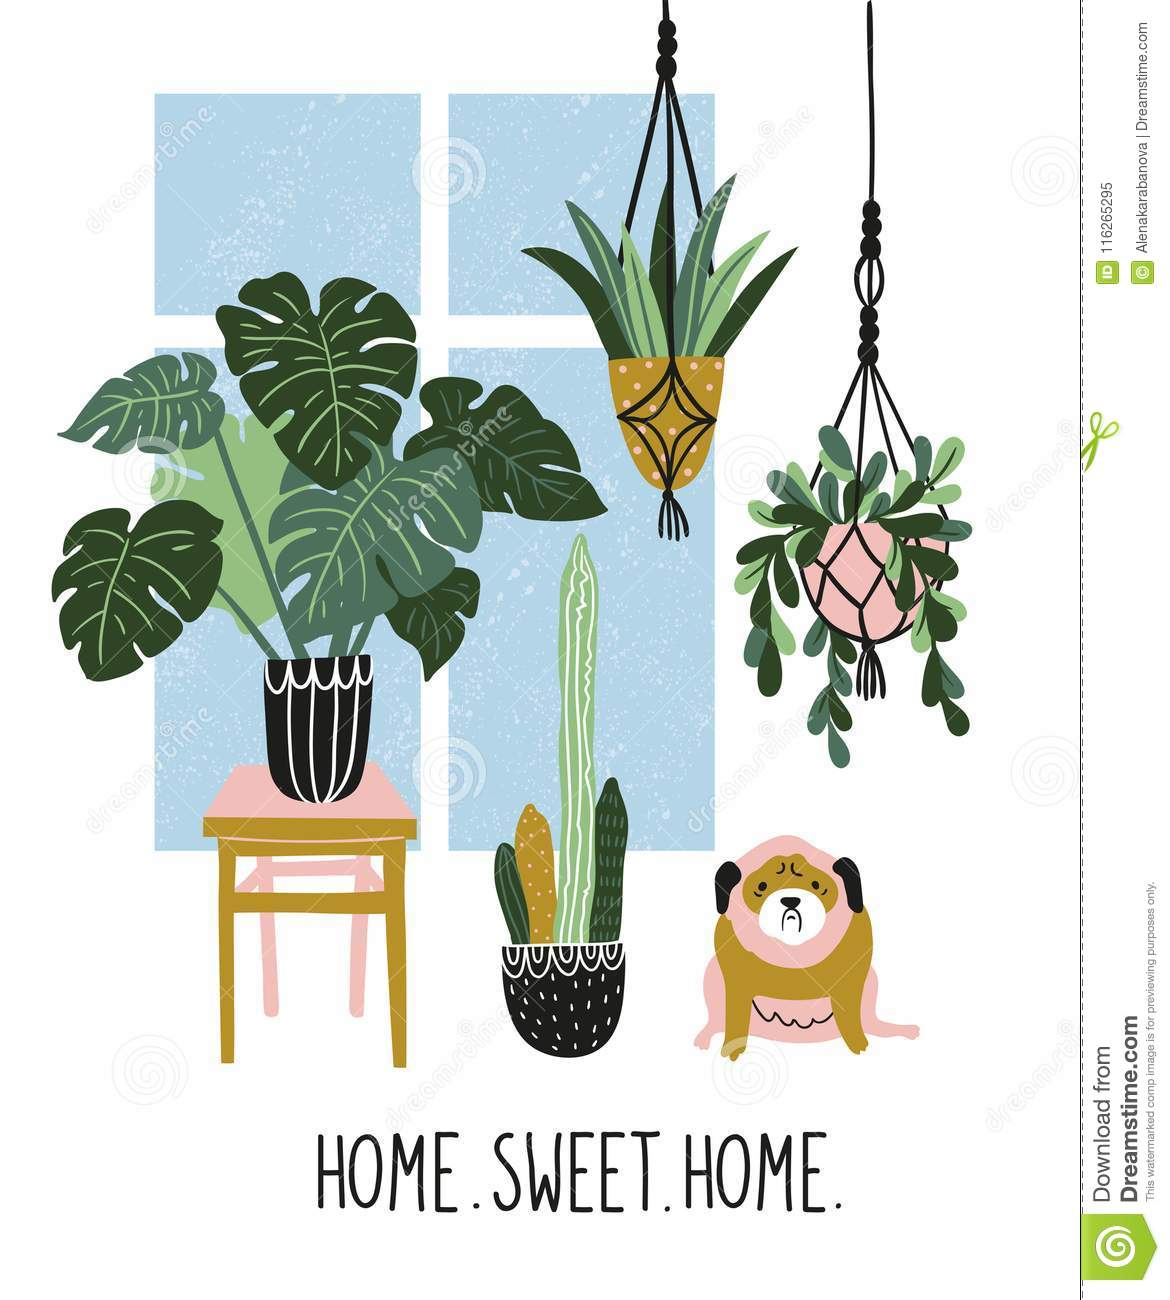 Hand drawn illustration with tropical house plants, window and cute dog. Vector poster design with text - `home sweet home`.